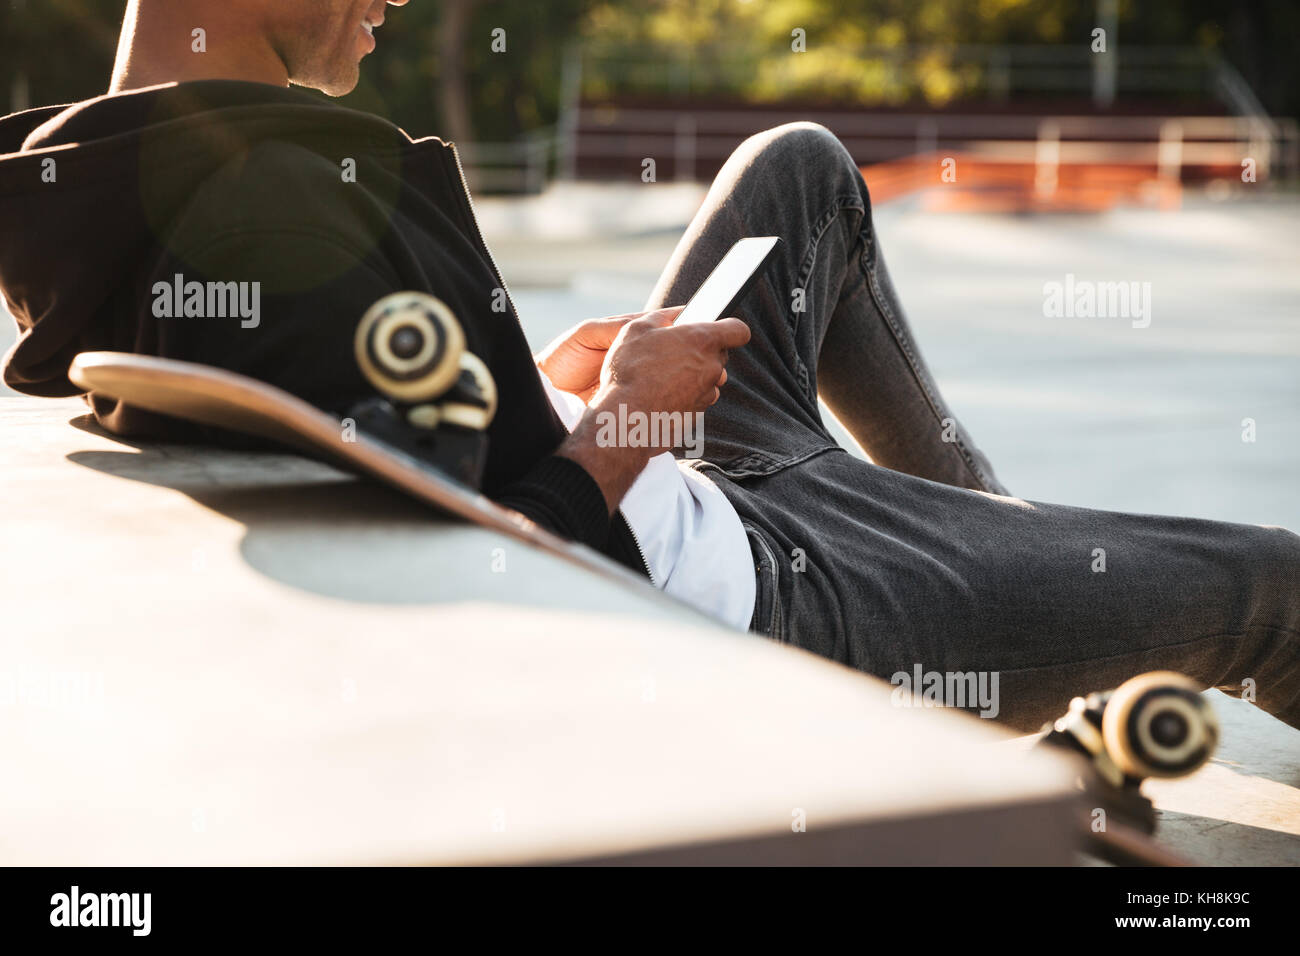 Cropped image of a smiling skateboarder looking at mobile phone screen on a sunlight background Stock Photo